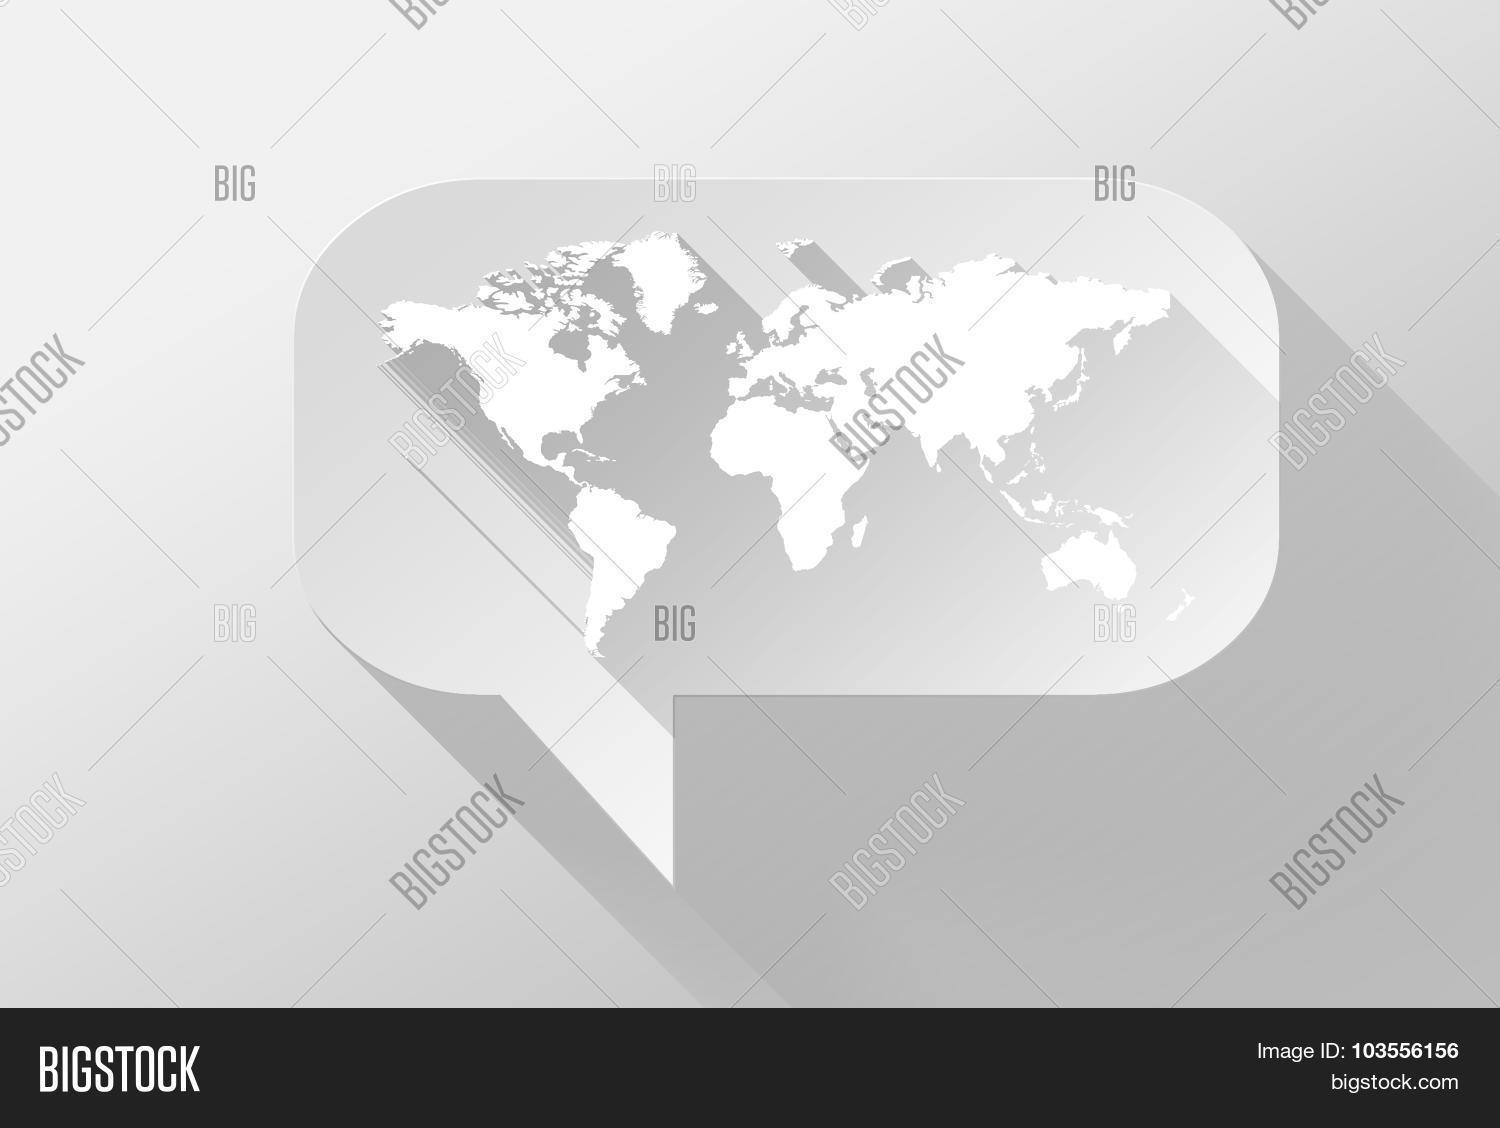 World map bubble image photo free trial bigstock world map in bubble speech widget and icon 3d illustration flat design gumiabroncs Choice Image